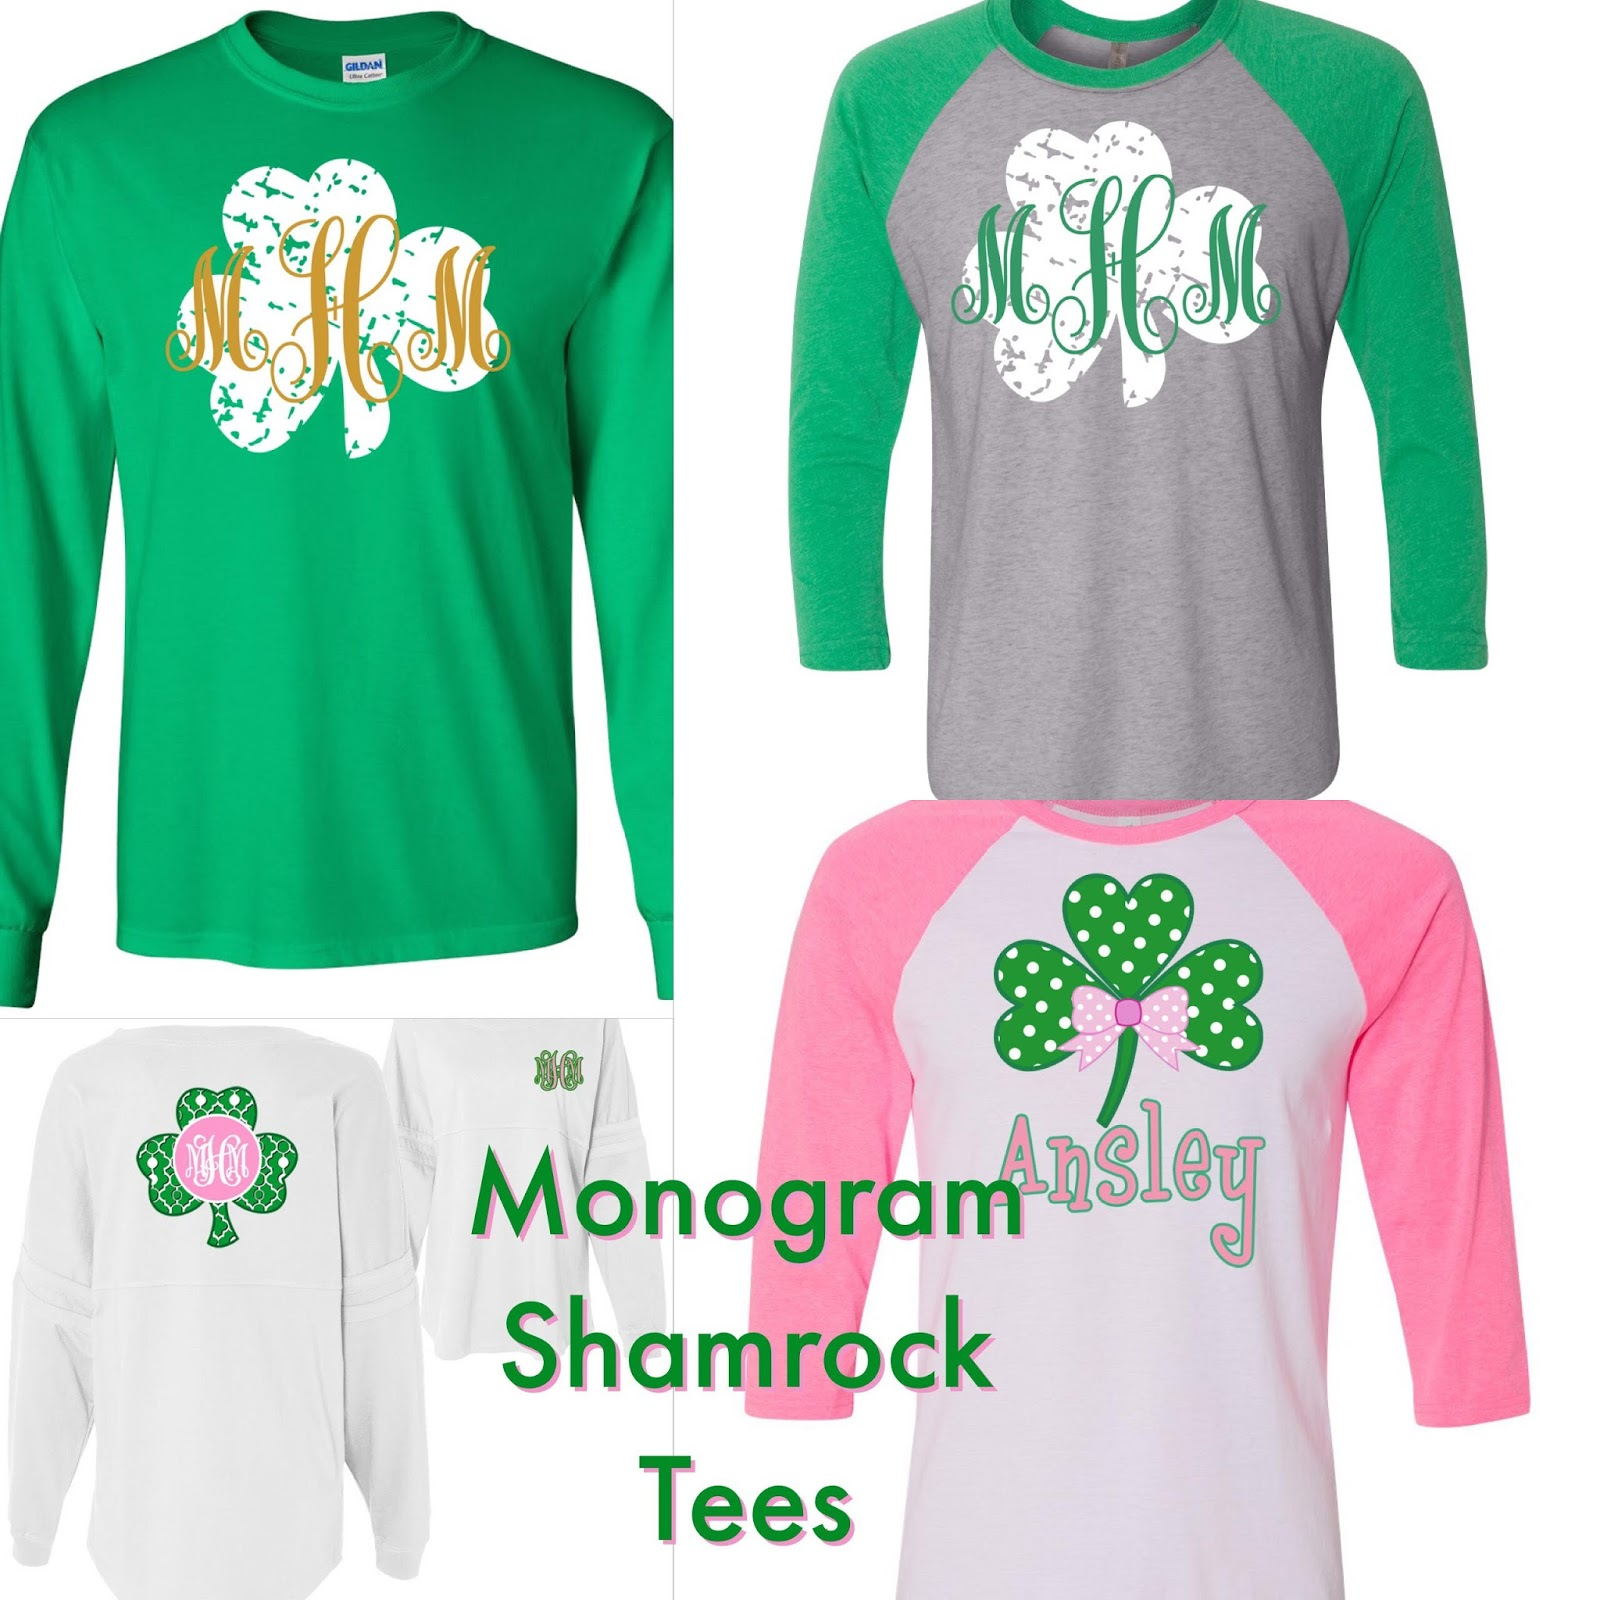 66ba8b14 Personalize Your Shamrocks: Monogram St. Patrick's Day Tees | The ...